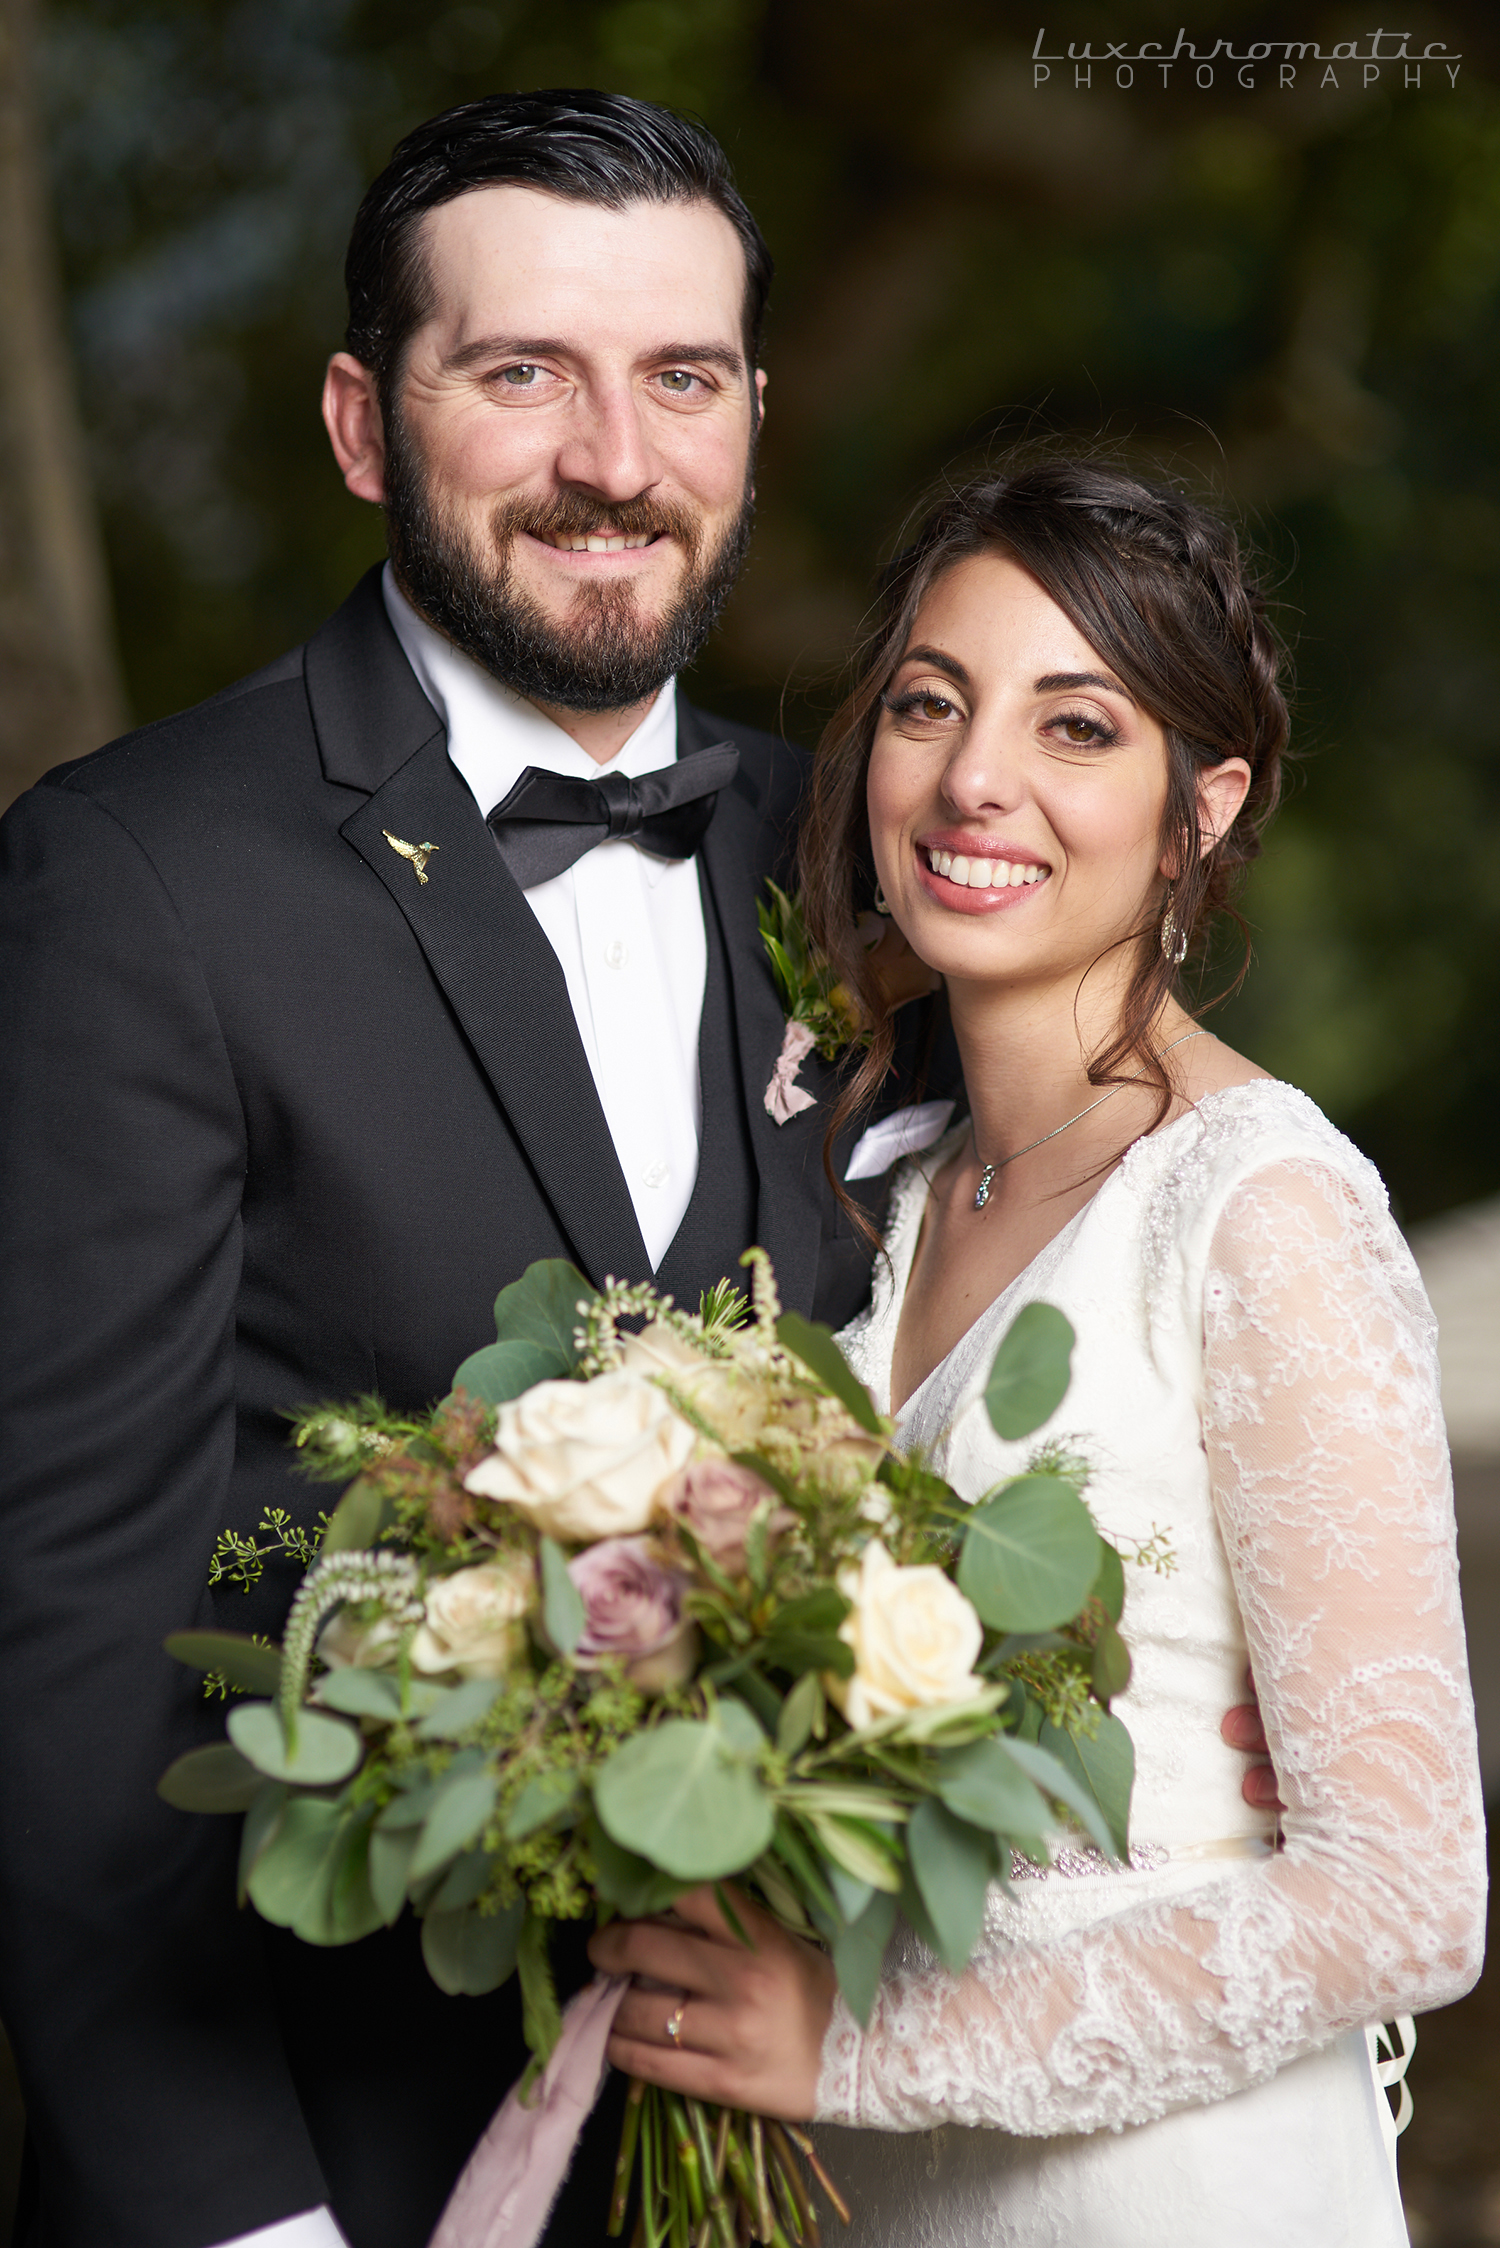 070817_Steph_Sil-San-Francisco-Bay-Area-Carmel-Valley-Monterey-Bay-California-Wedding-Los-Laureles-Lodge-Bride-Gown-Dress-Groom-Engaged-Knot-Bridesmaids-Luxchromatic-Portrait-Sony-Alpha-a7Rii-Interfit-Profoto-Best-Photographer-Photography-0251 copy.jpg